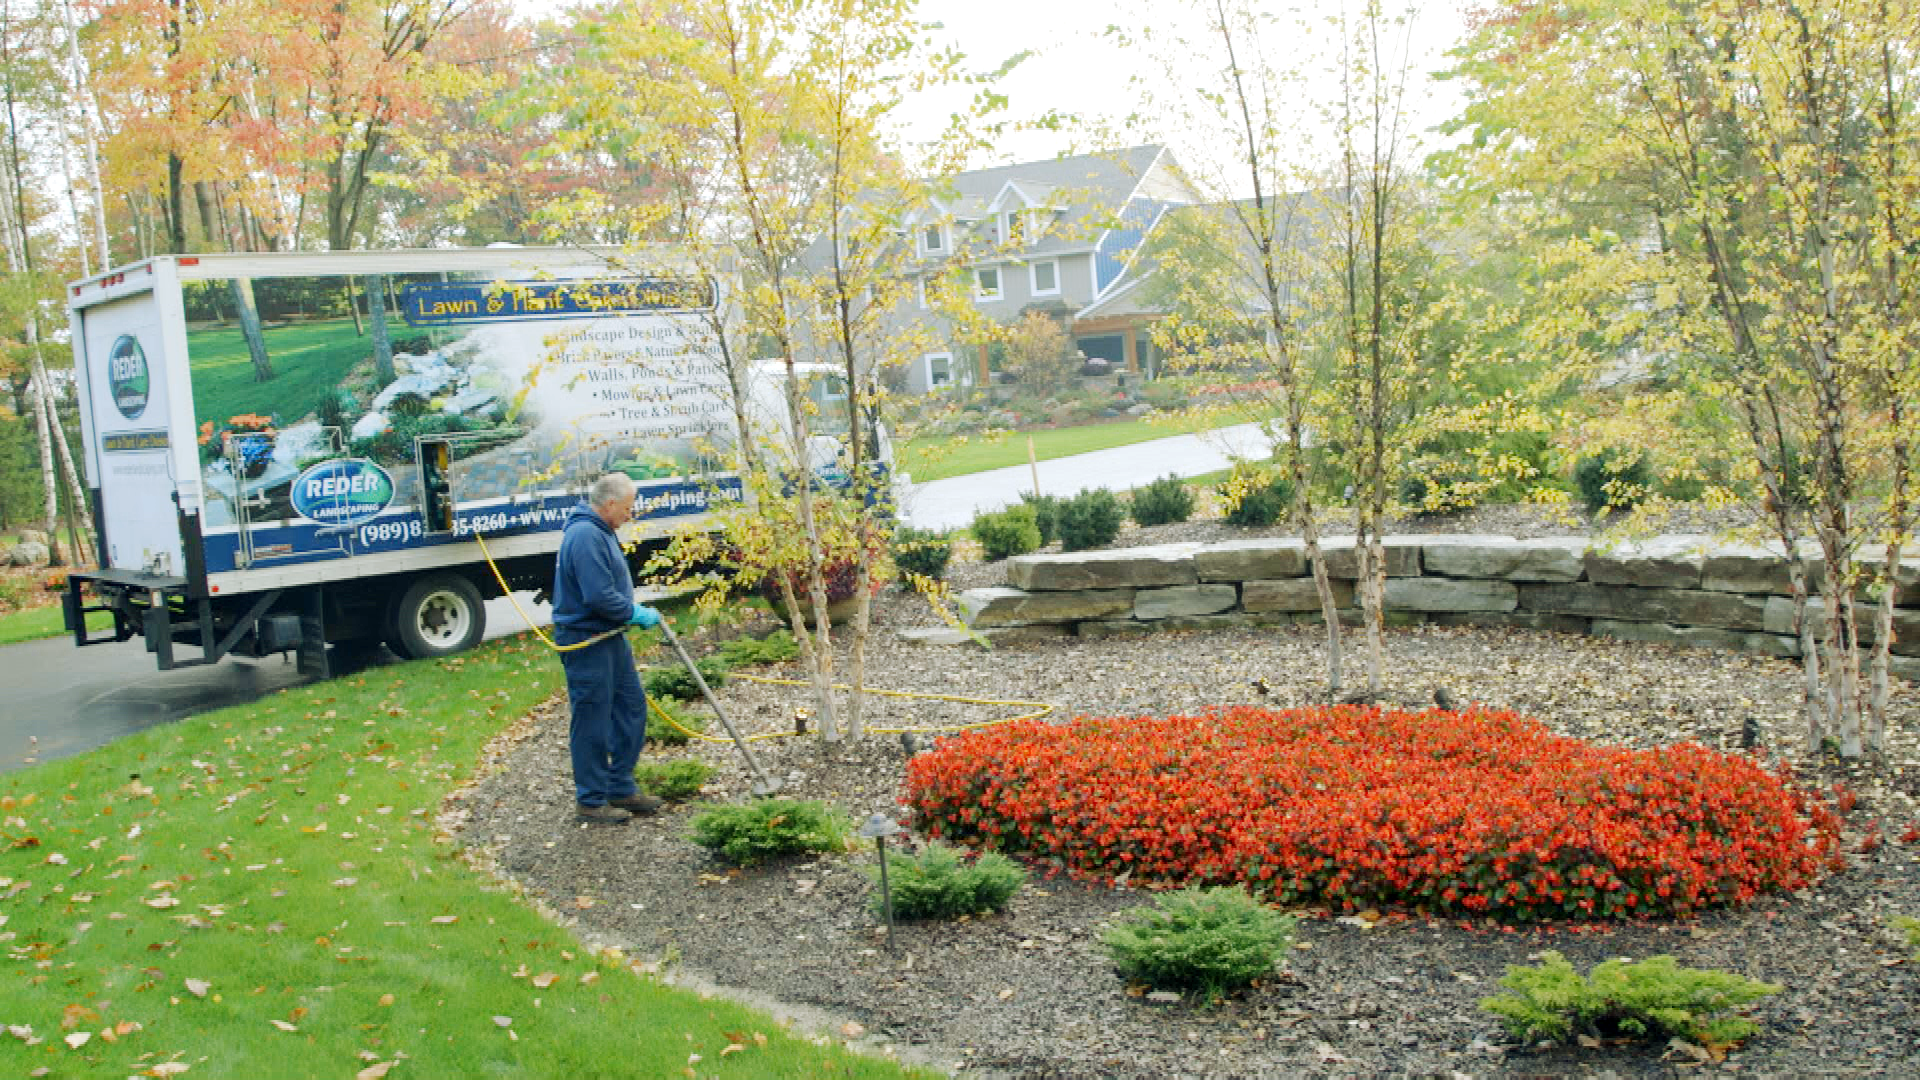 Is Your Lawn & Landscape Ready for Fall?